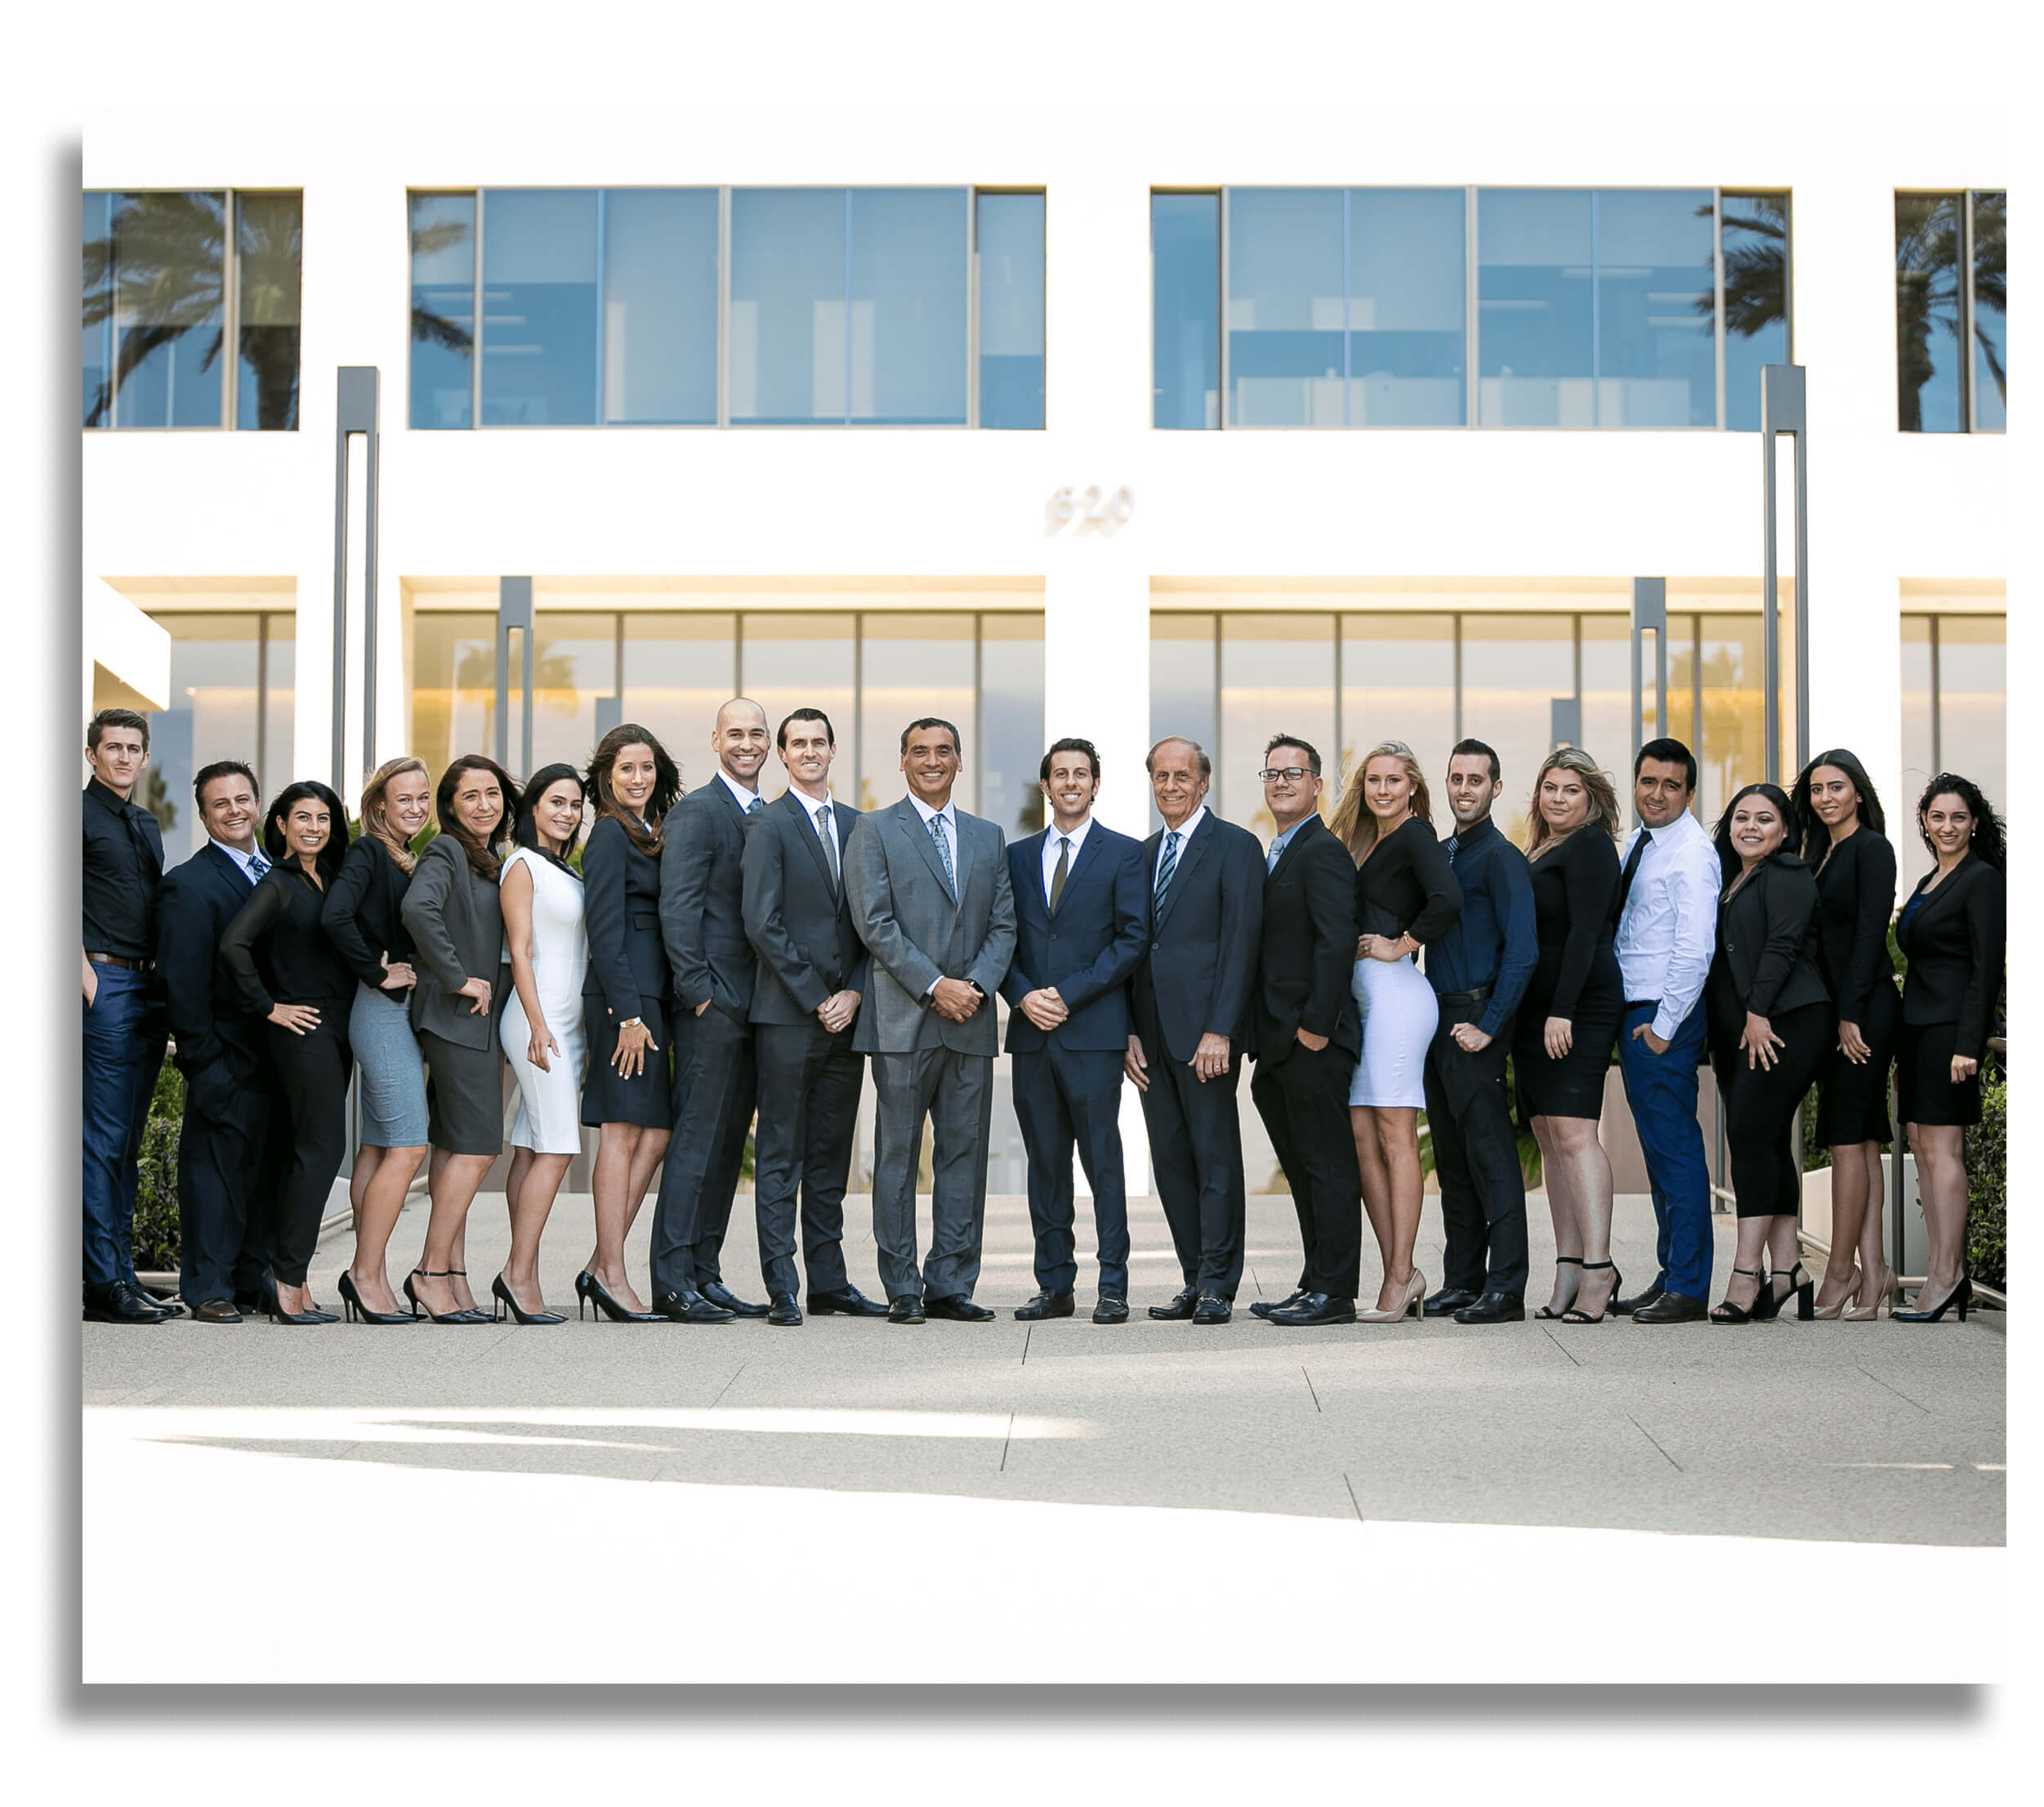 The team of professionals of CA Trial Attorneys powered by KM Law Kalfayan Merjanian LLP